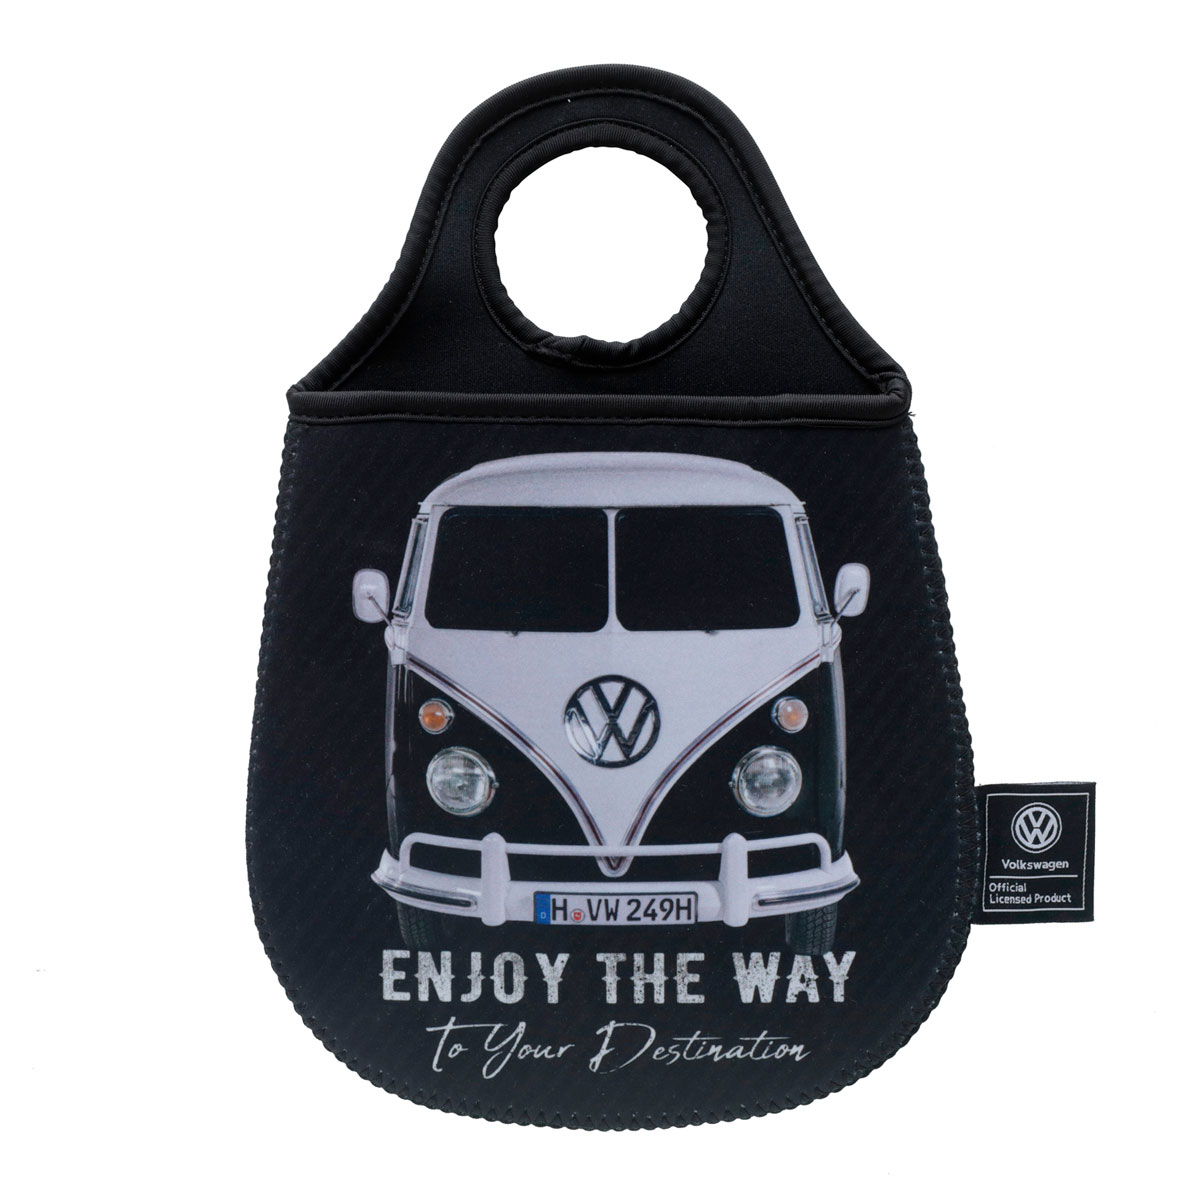 Lixeira para Carro Kombi Enjoy The Way - Presente Super